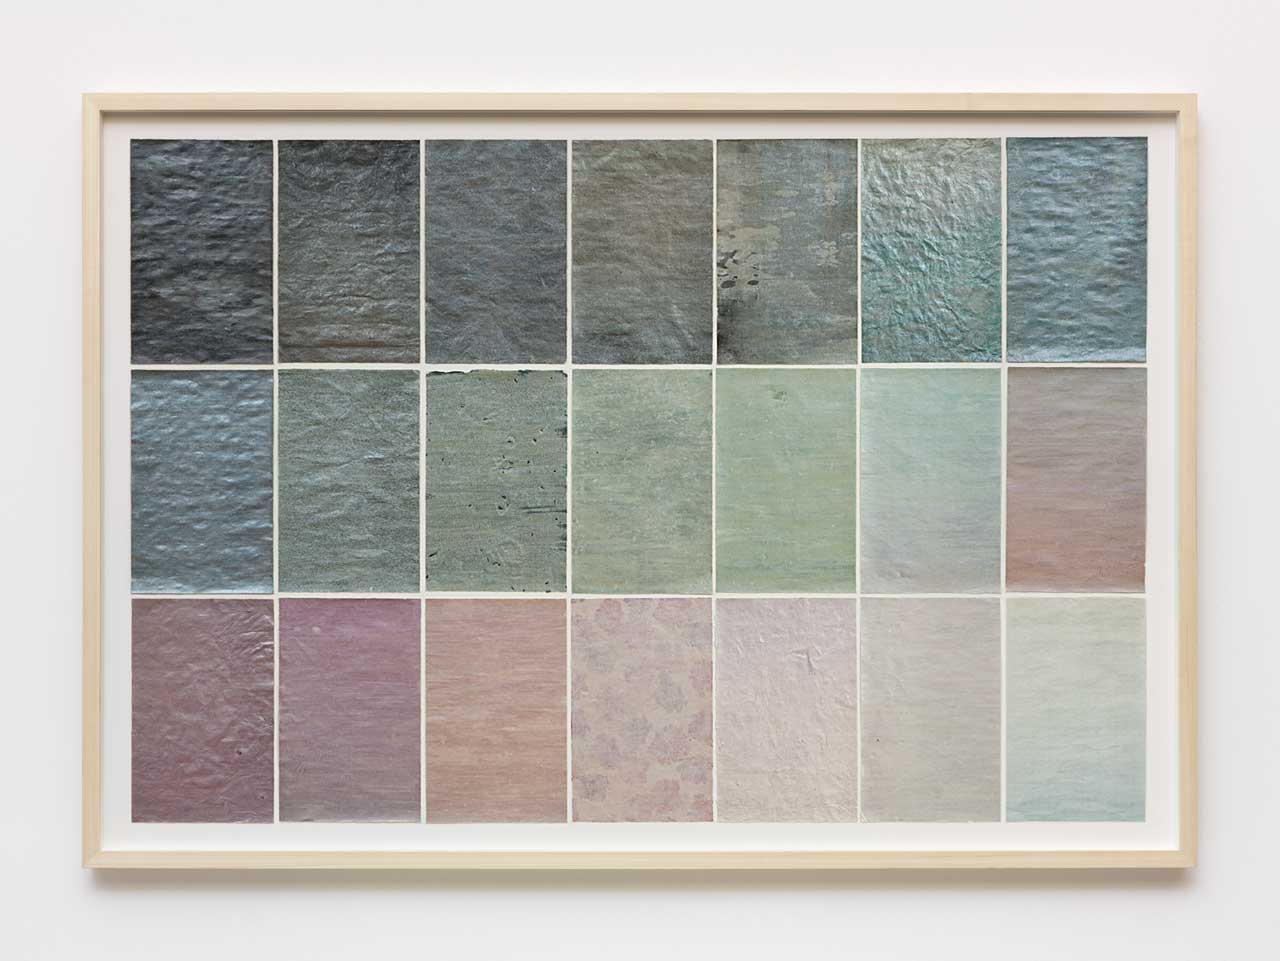 Marco Basta,'Pioggia Primaverile', 2012, inkjet print and pearl pigment on various papers, 109 x 158 cm. Photo: Andrea Rossetti. Image courtesy the artist.